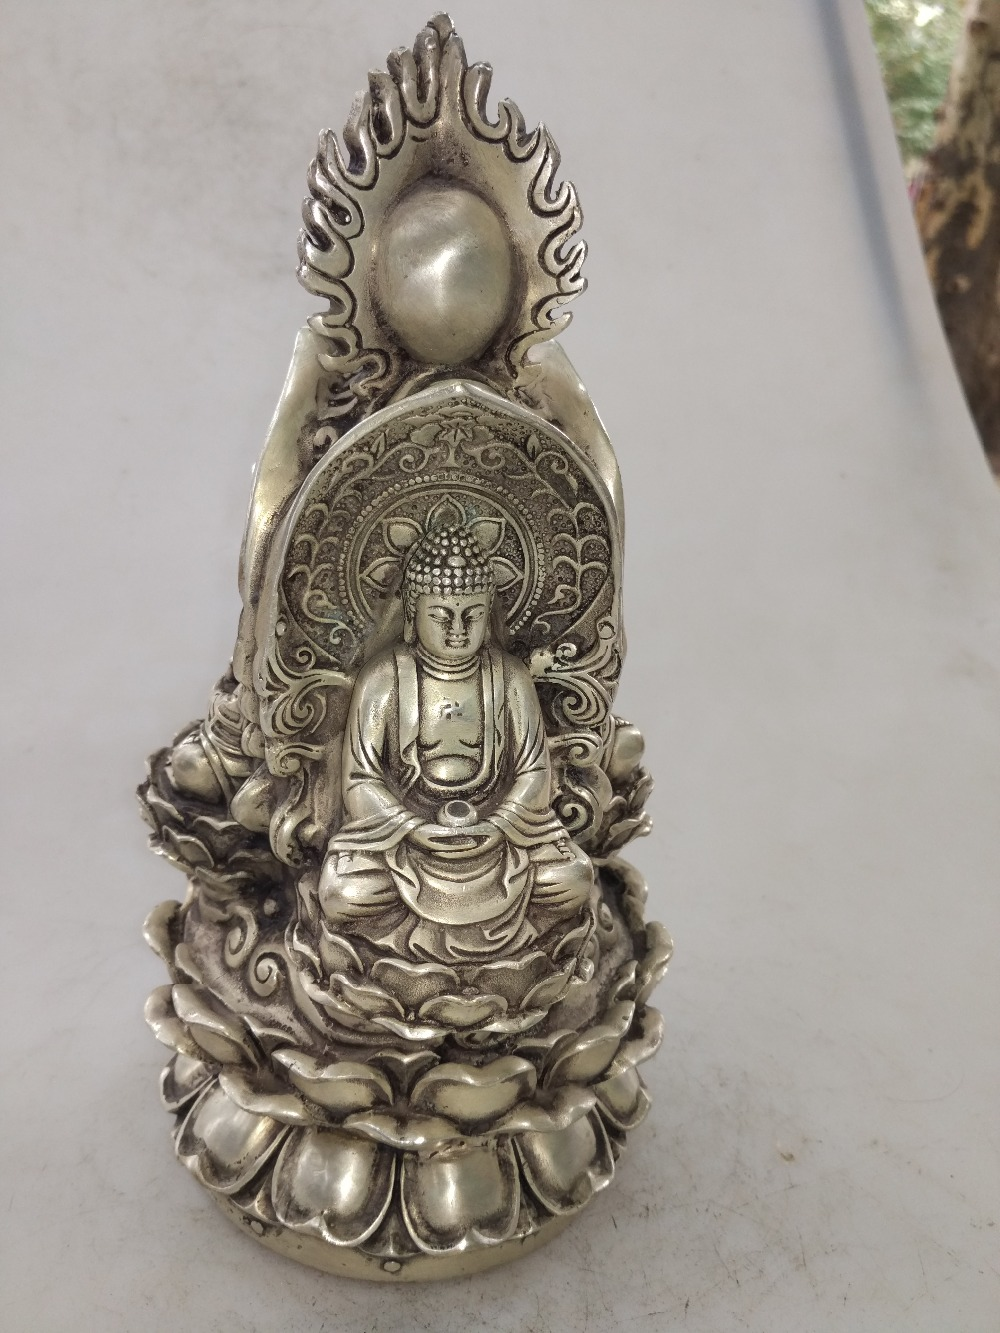 Hand carved white copper Buddhist three sage sculptures in the Emperor Qianlong of the Qing Dynasty in ChinaHand carved white copper Buddhist three sage sculptures in the Emperor Qianlong of the Qing Dynasty in China